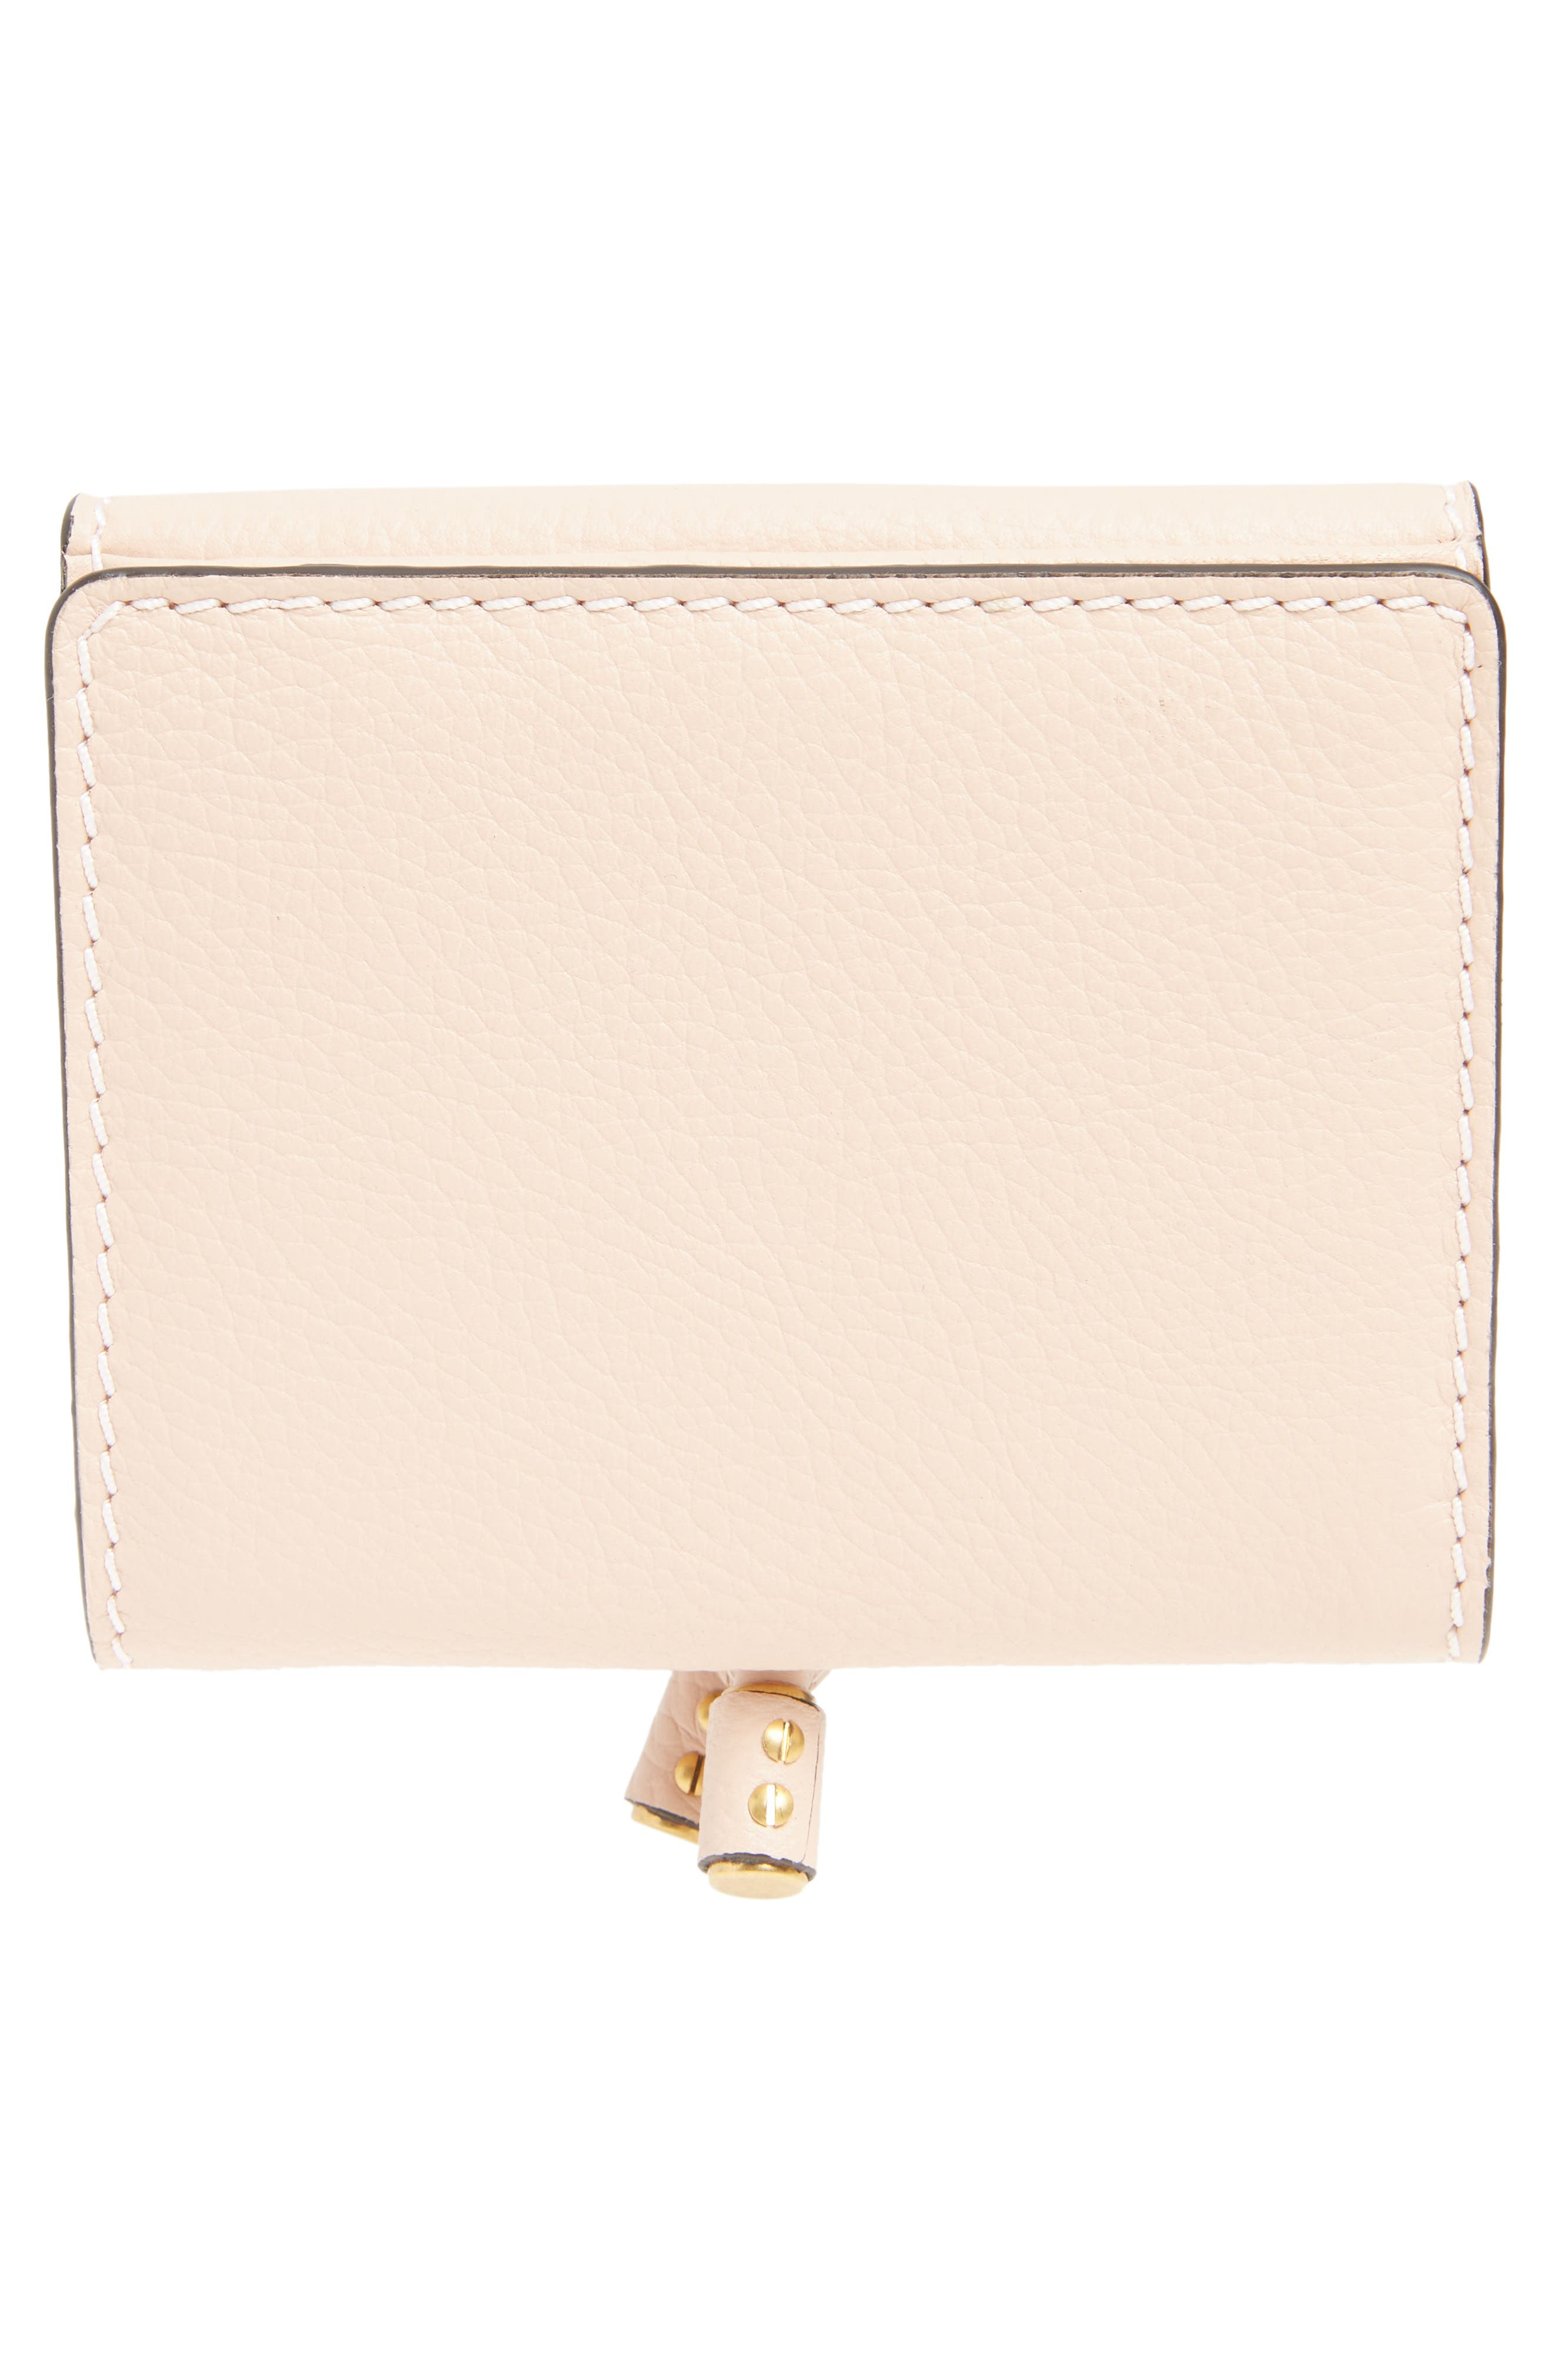 'Marcie' French Wallet,                             Alternate thumbnail 4, color,                             BLUSH NUDE